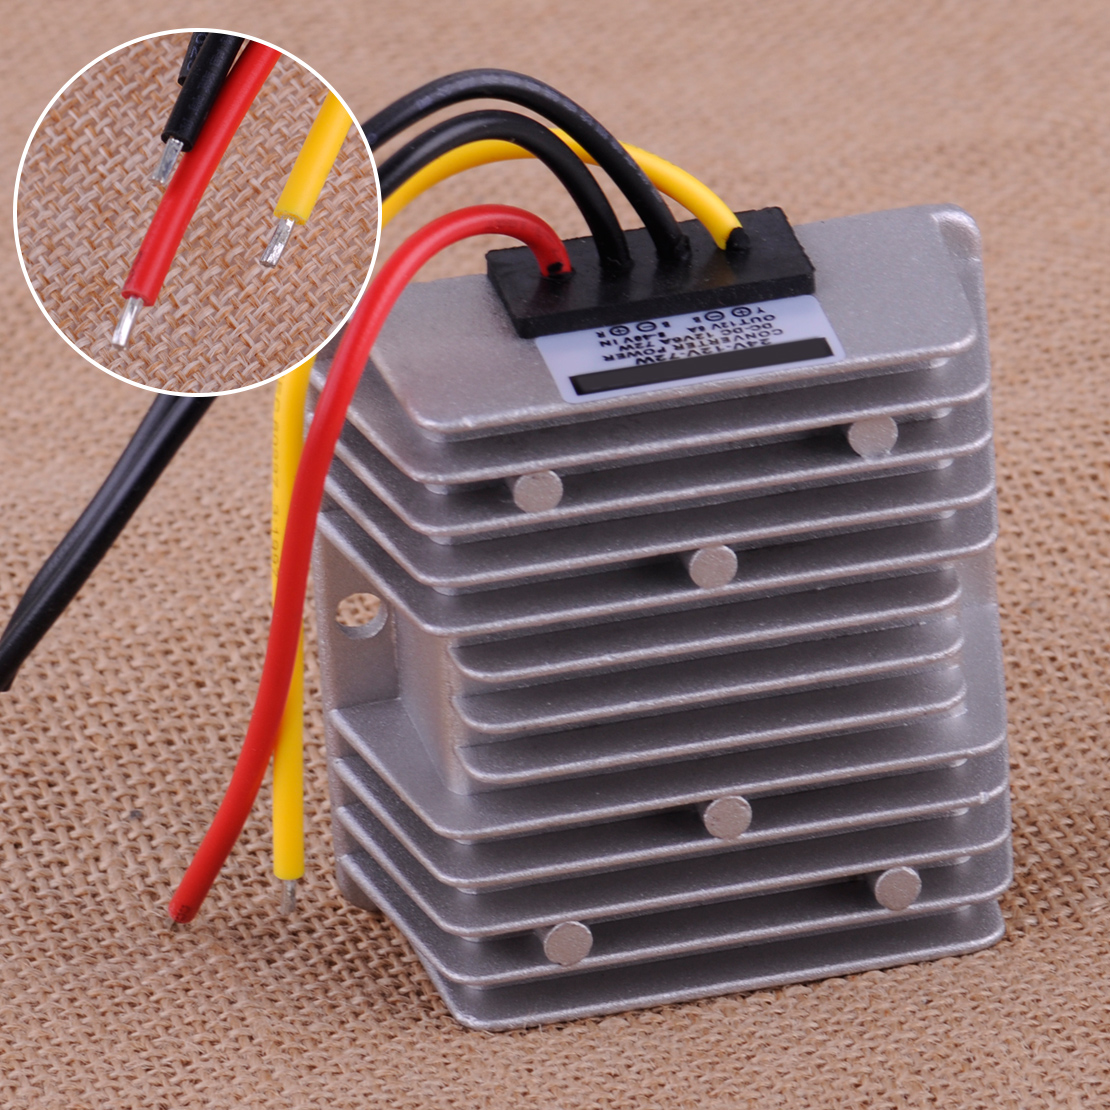 Waterproof Vehicle Automatic Voltage Stabilizer Regulator DC8-40V to 12V 6A 72W Automotive